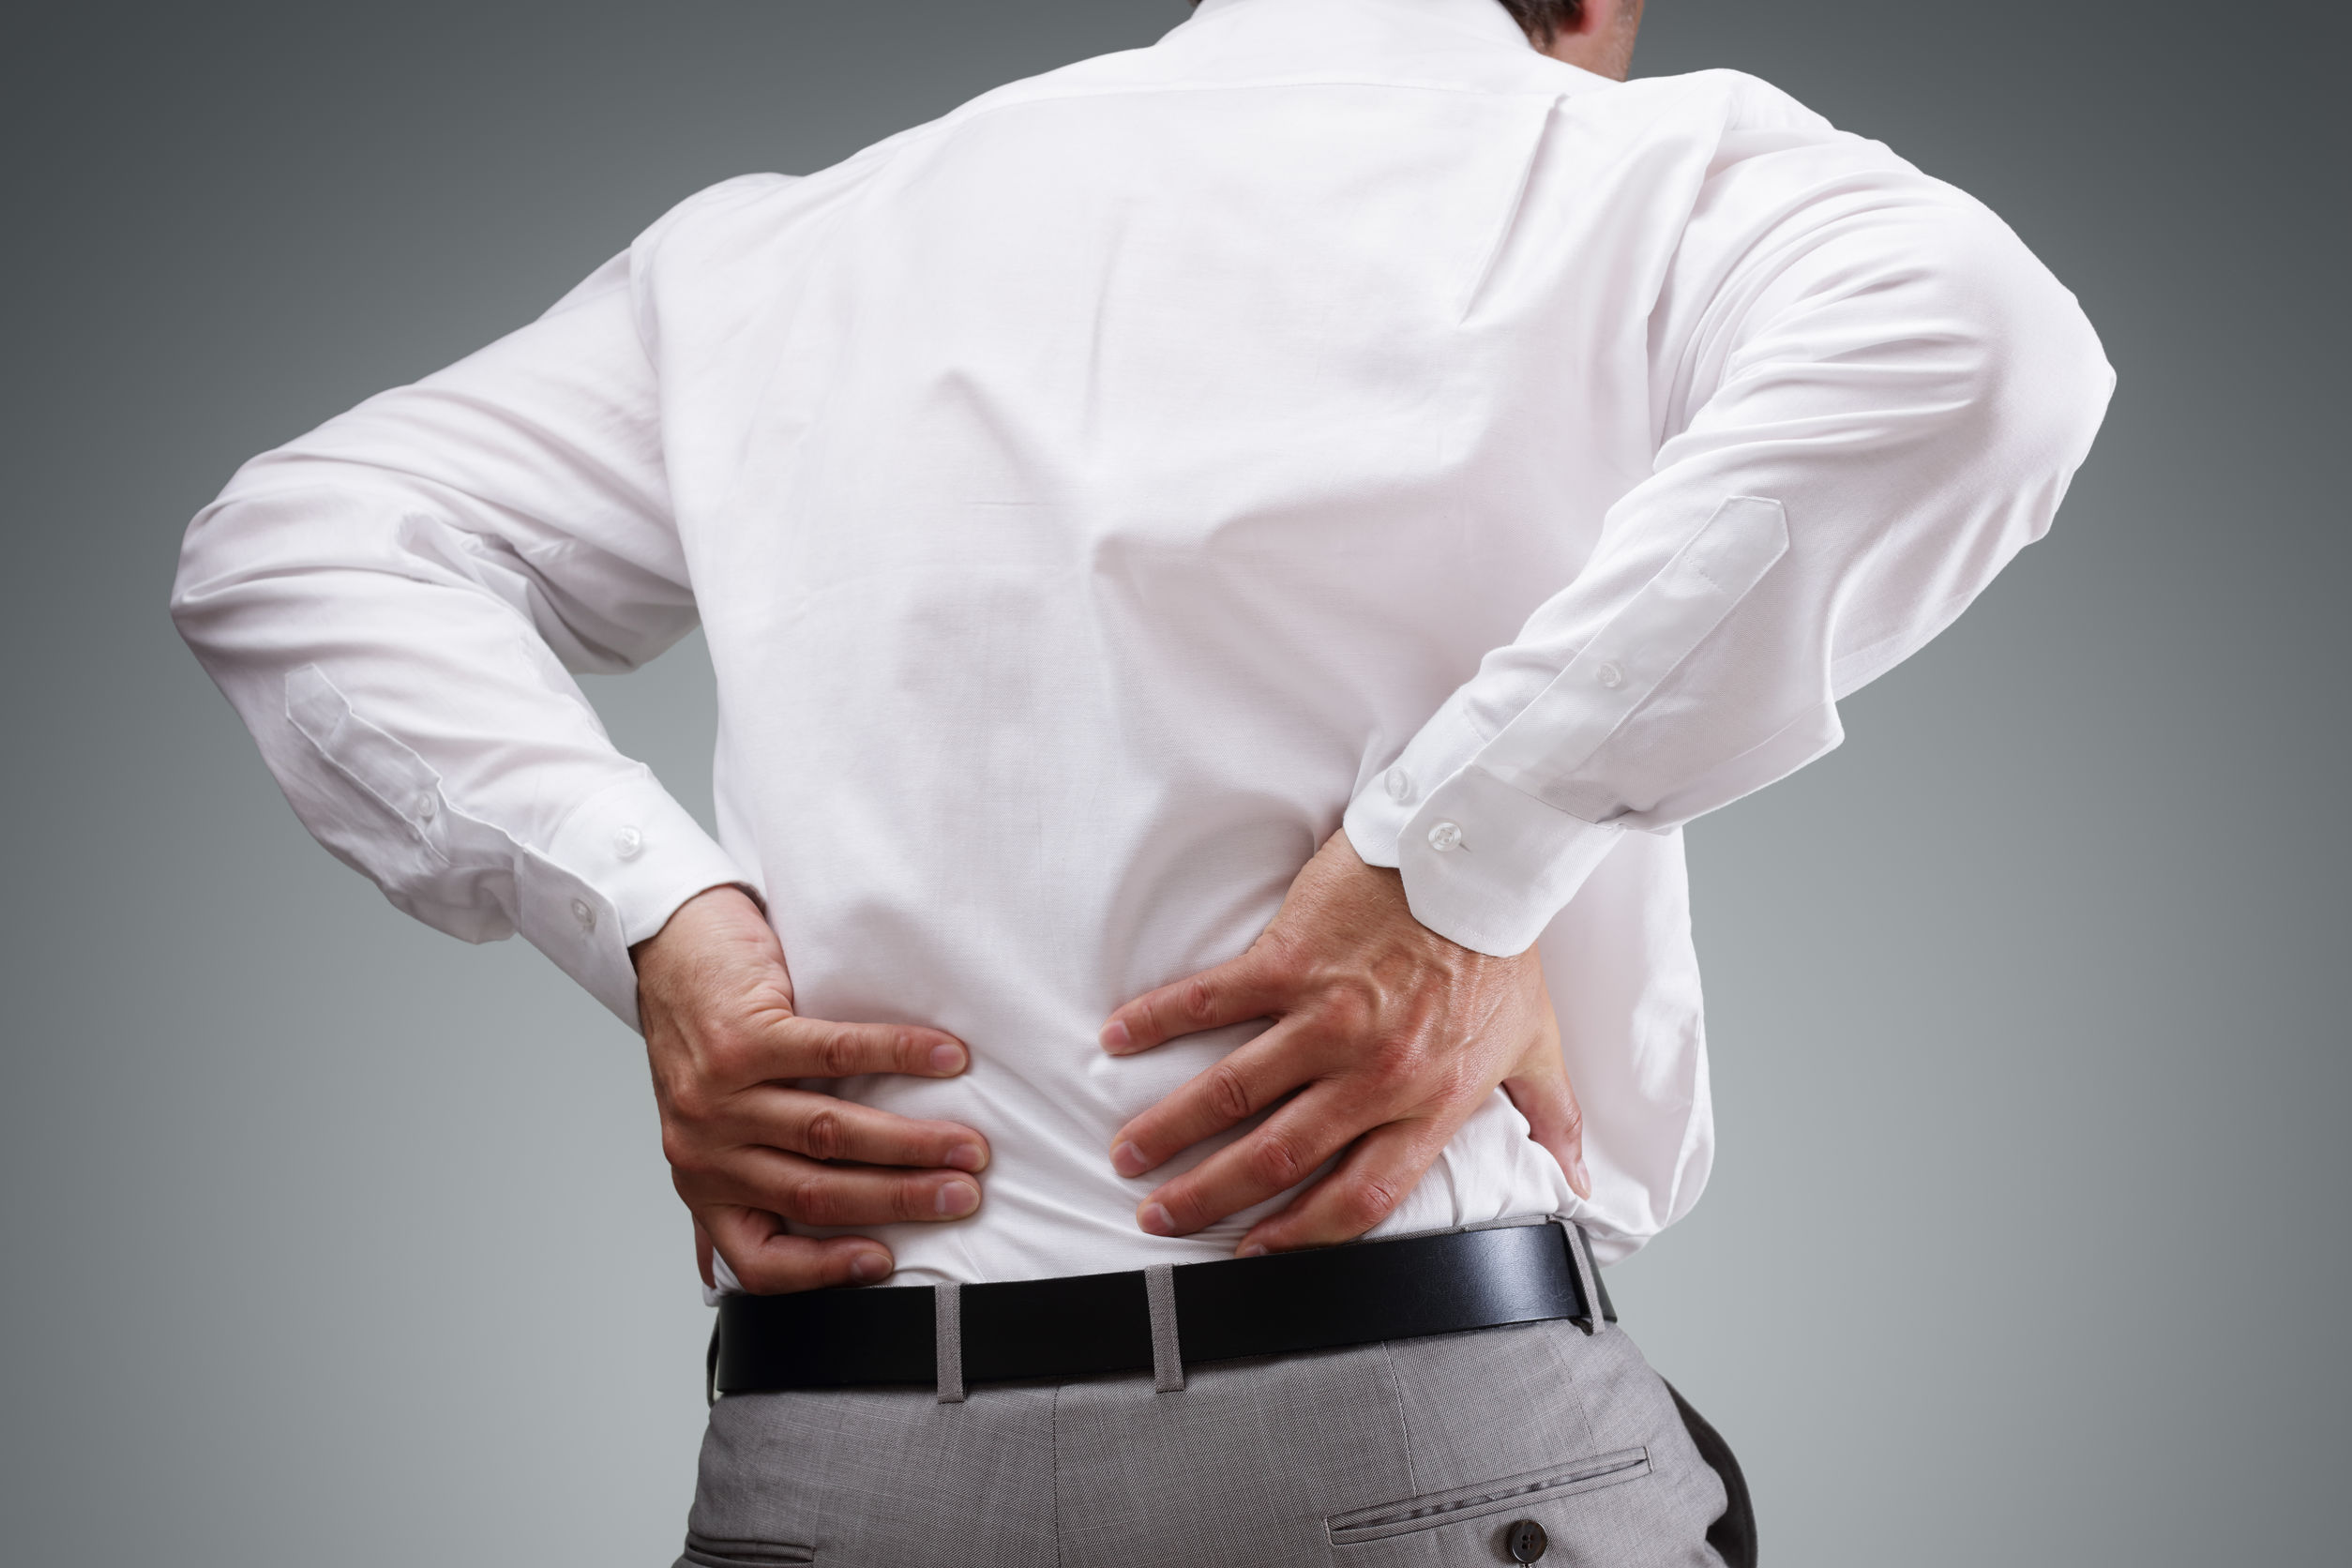 Article image for Leading spinal surgeon Dr Michael Wong's tips for dealing with back pain